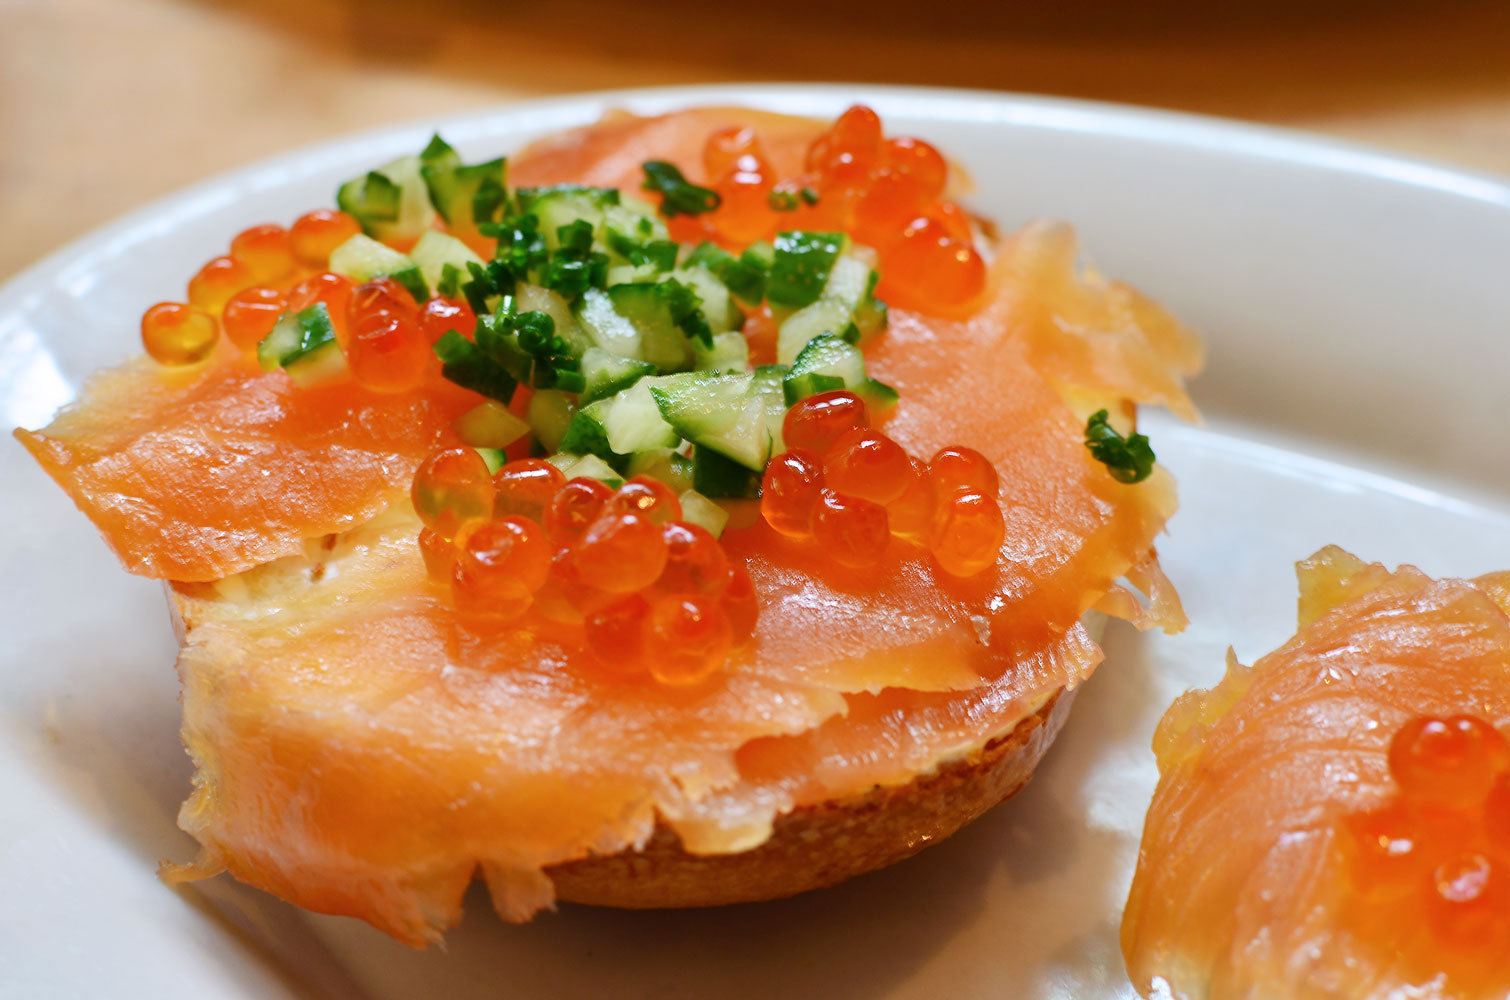 The Avenue D.  Bagel with lox, schmear, roe, cucumber, and chives